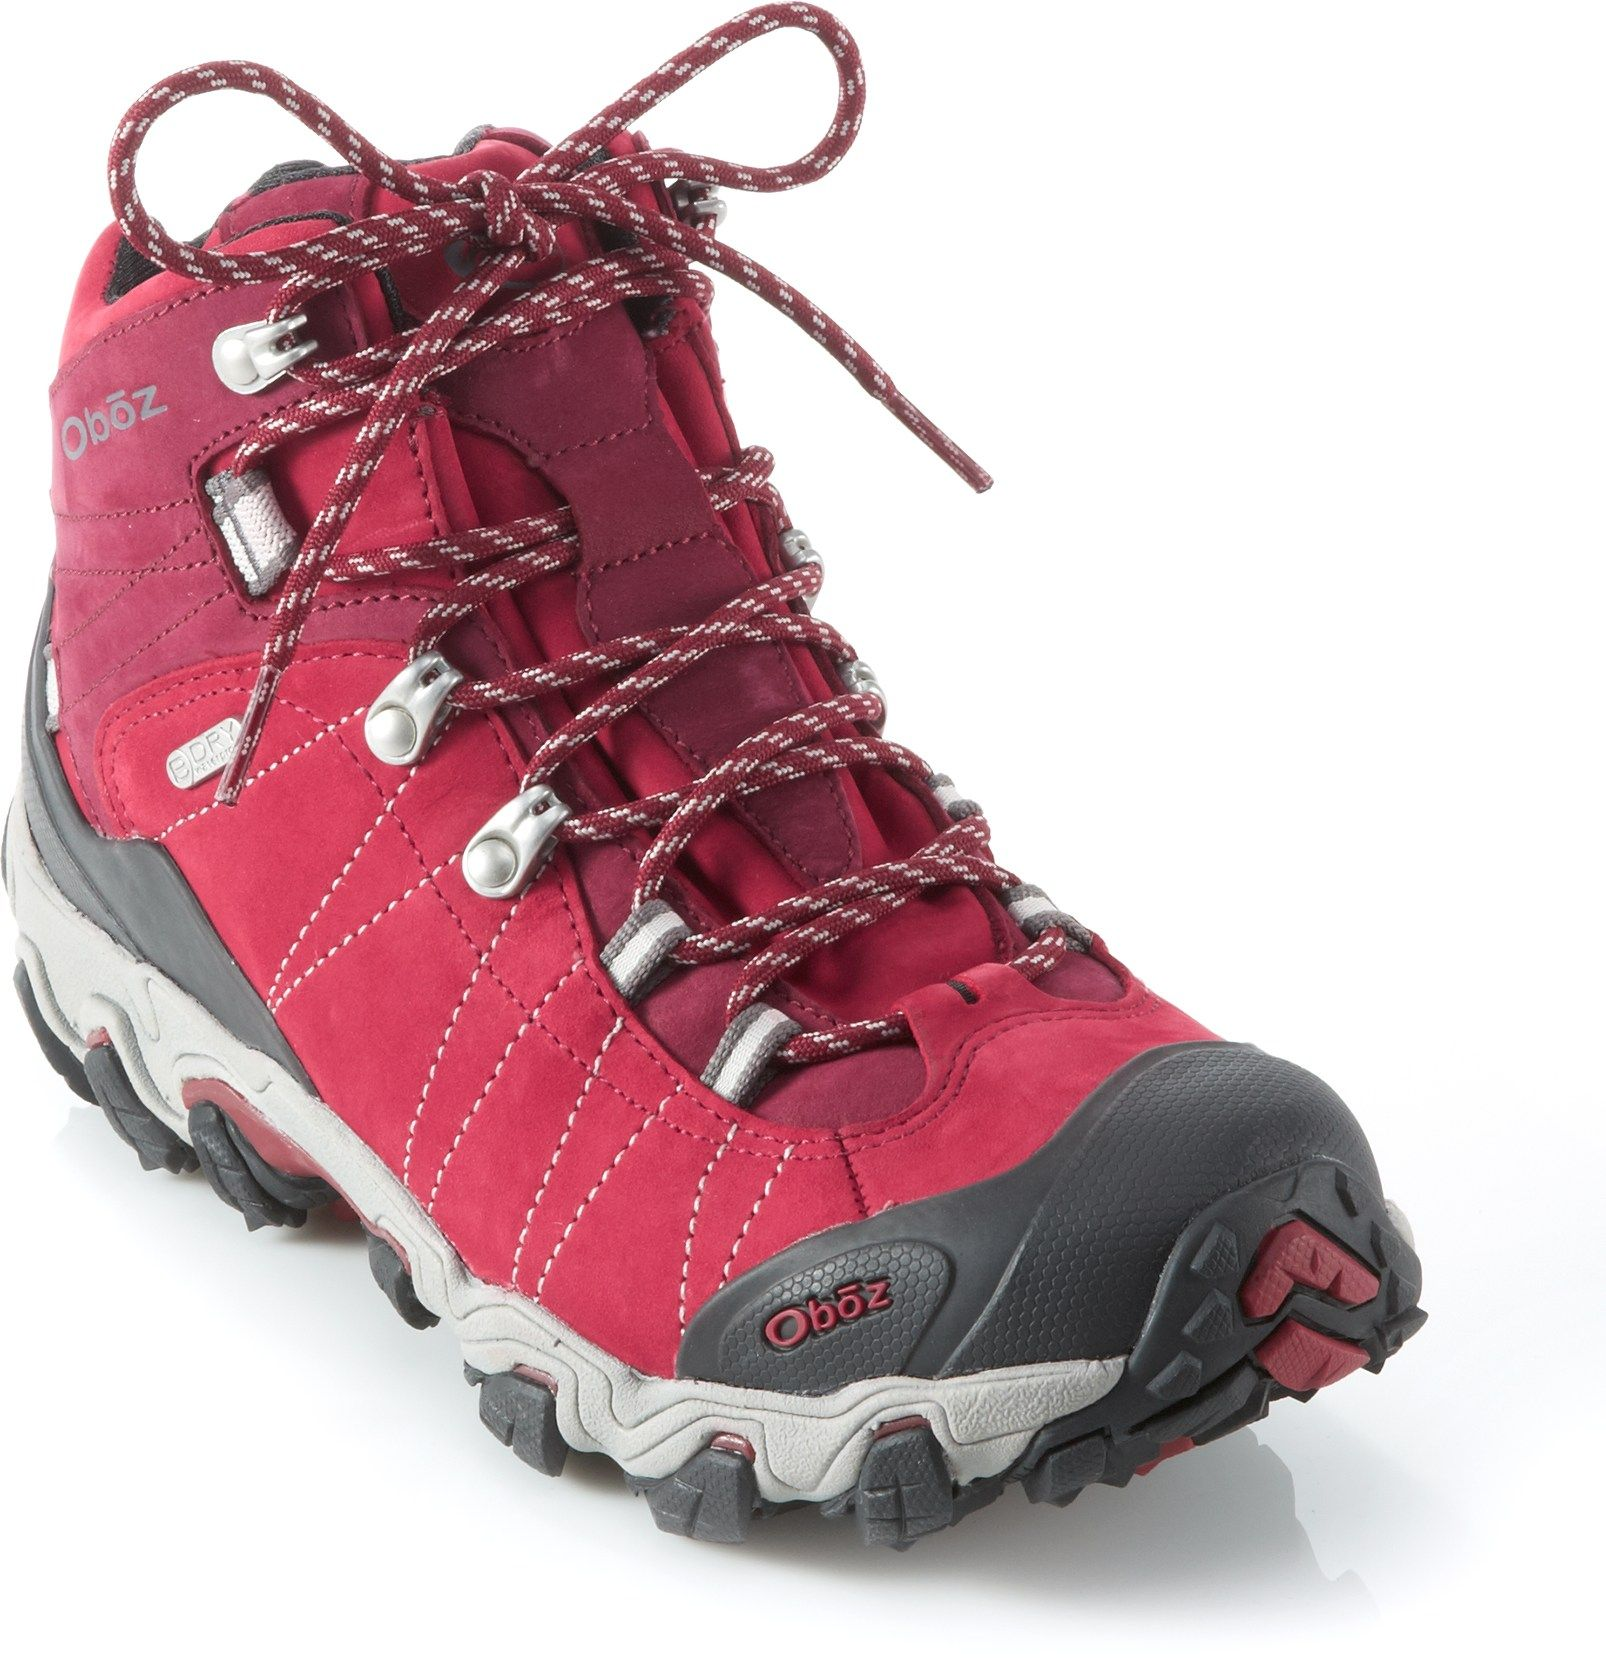 235ec67118a Oboz Women's Bridger BDry Hiking Boots Rio Red 10 Wide | *Apparel ...